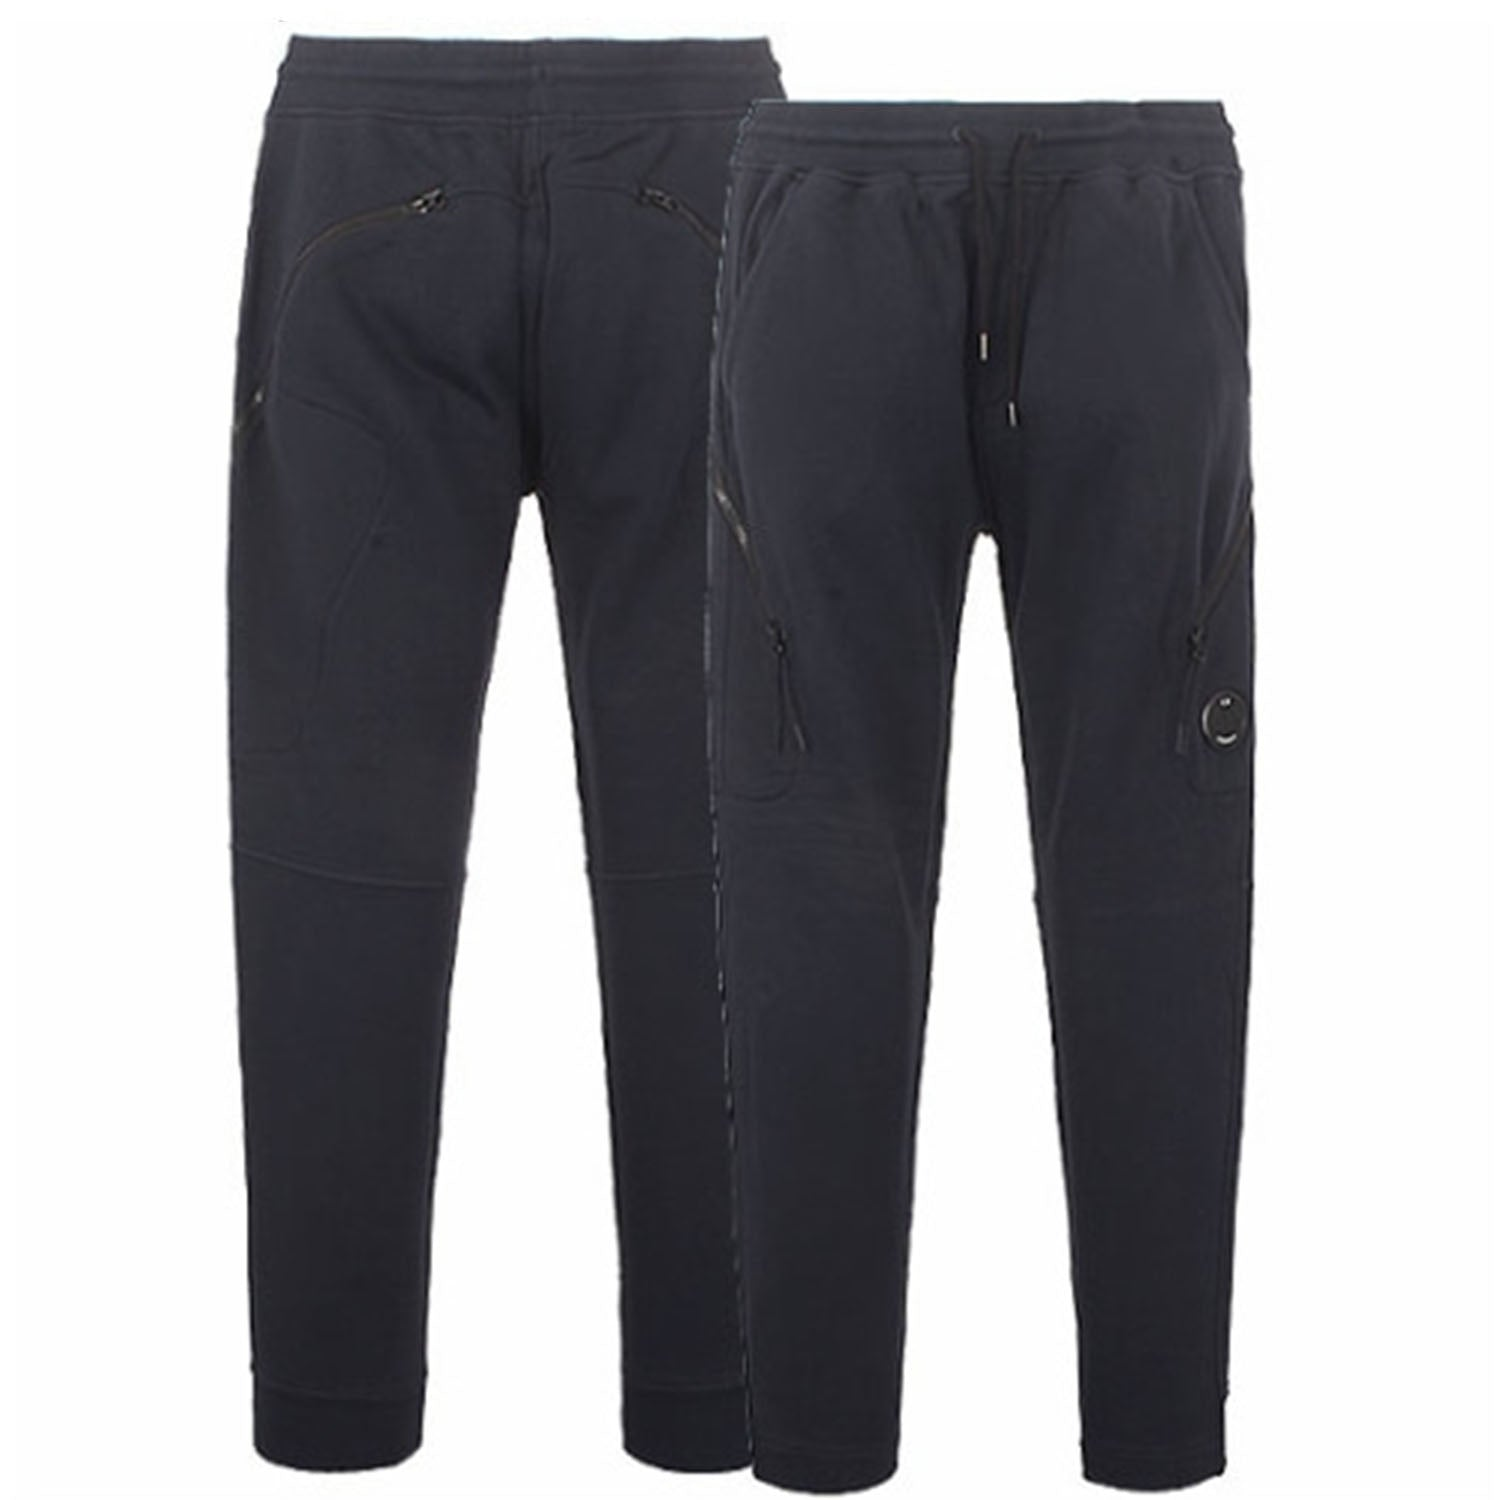 CP Company Diagonal Fleece Zip Pocket Sweatpants